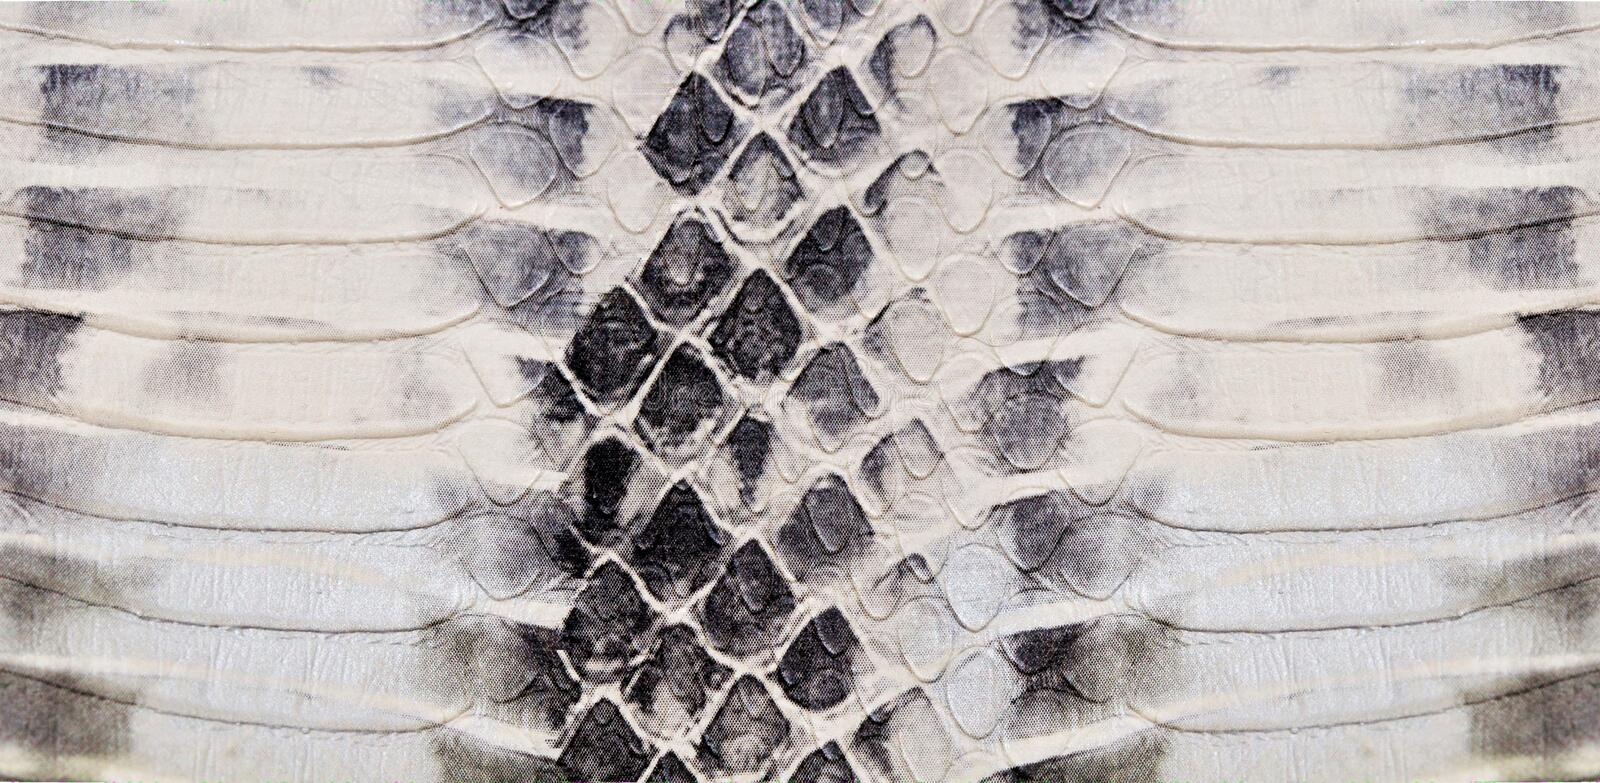 Snake skin texture stock photos